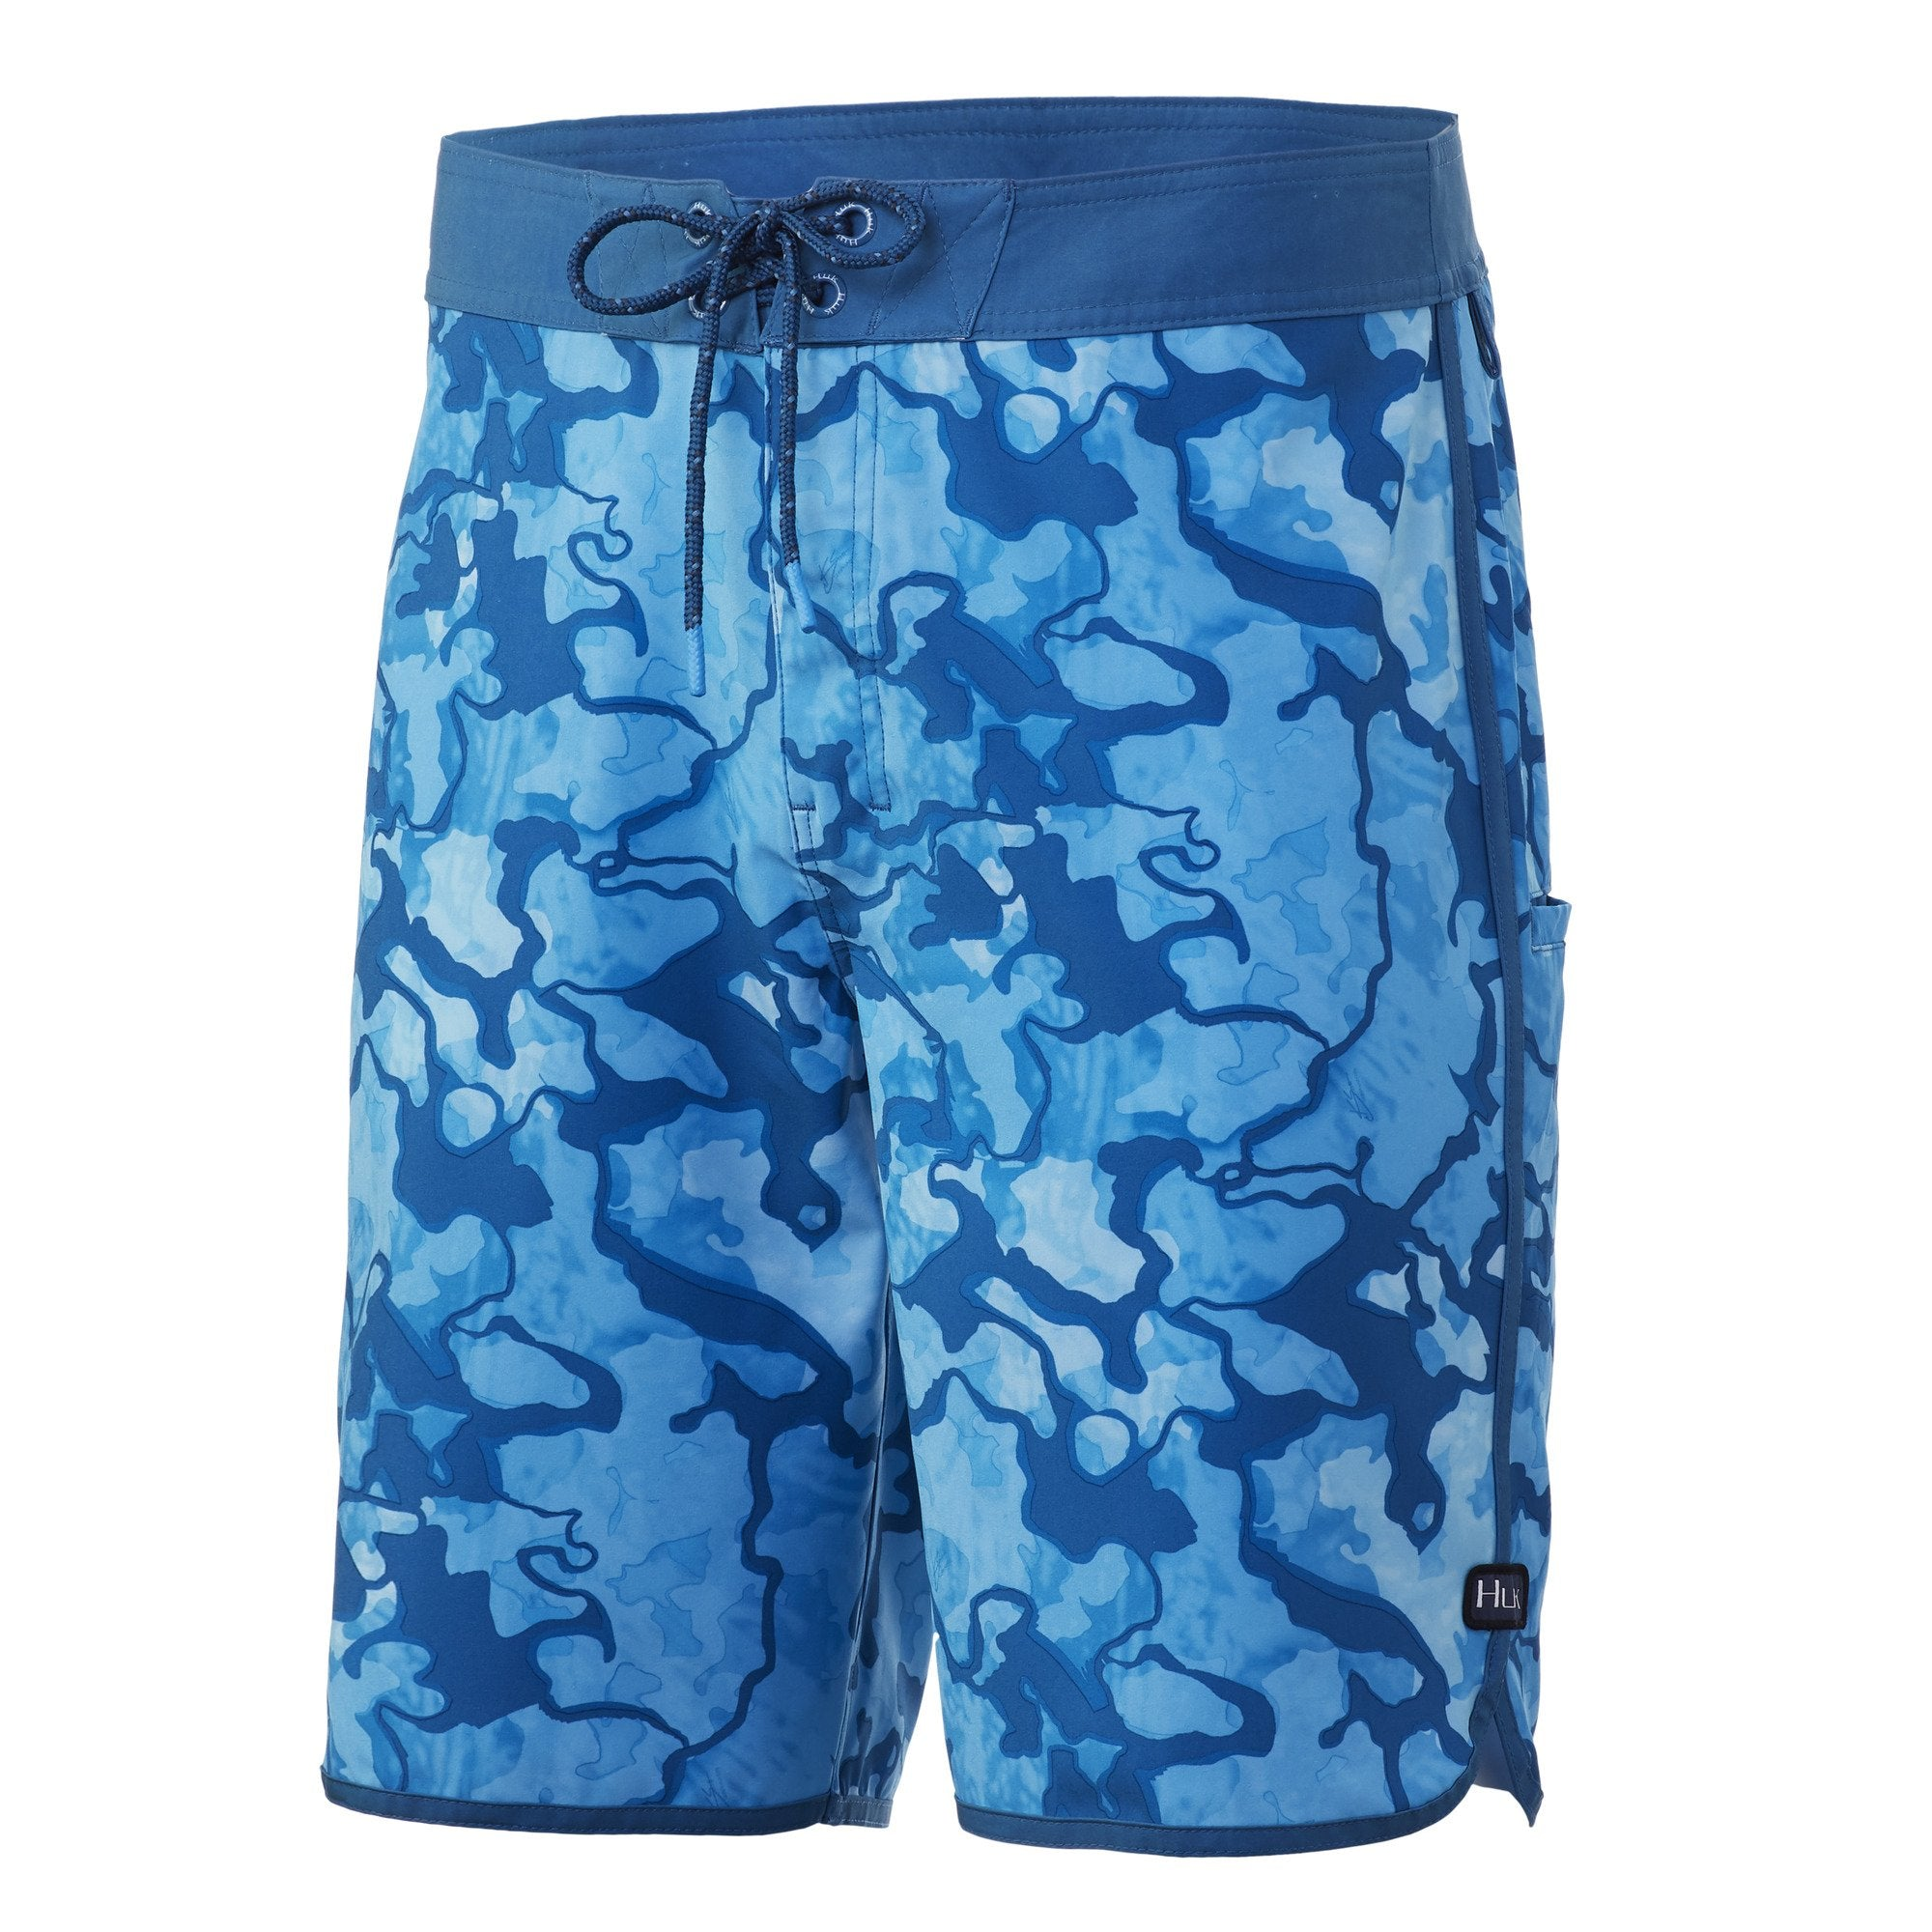 "Huk Current Camo Classic 20"" Boardshort"